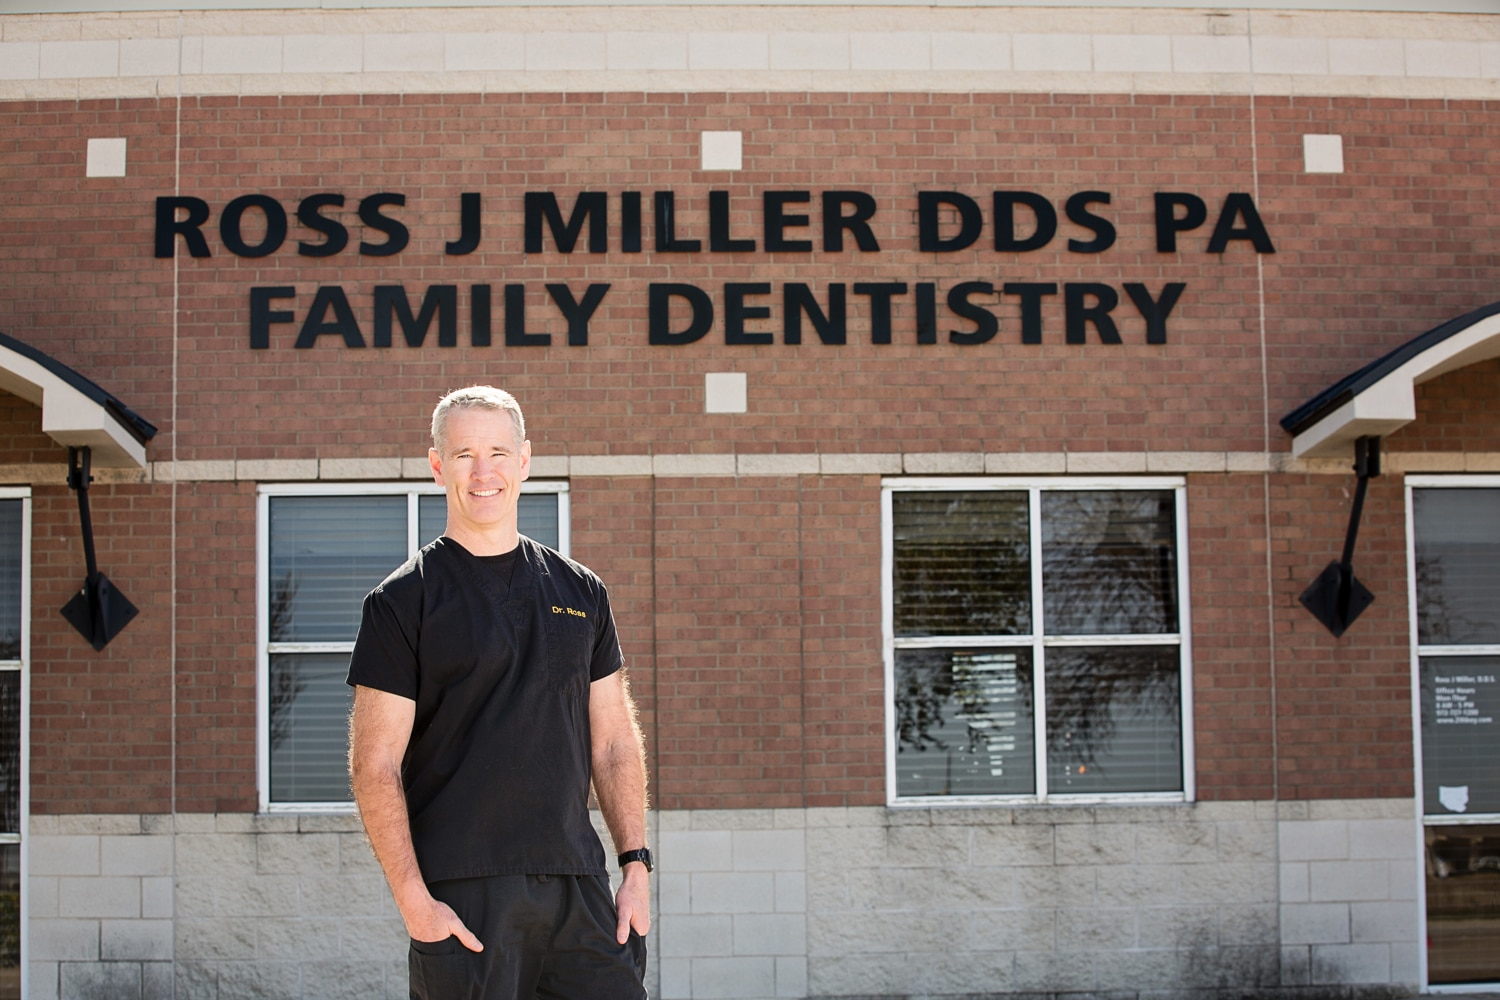 Dr. Ross Miller Family Dentistry